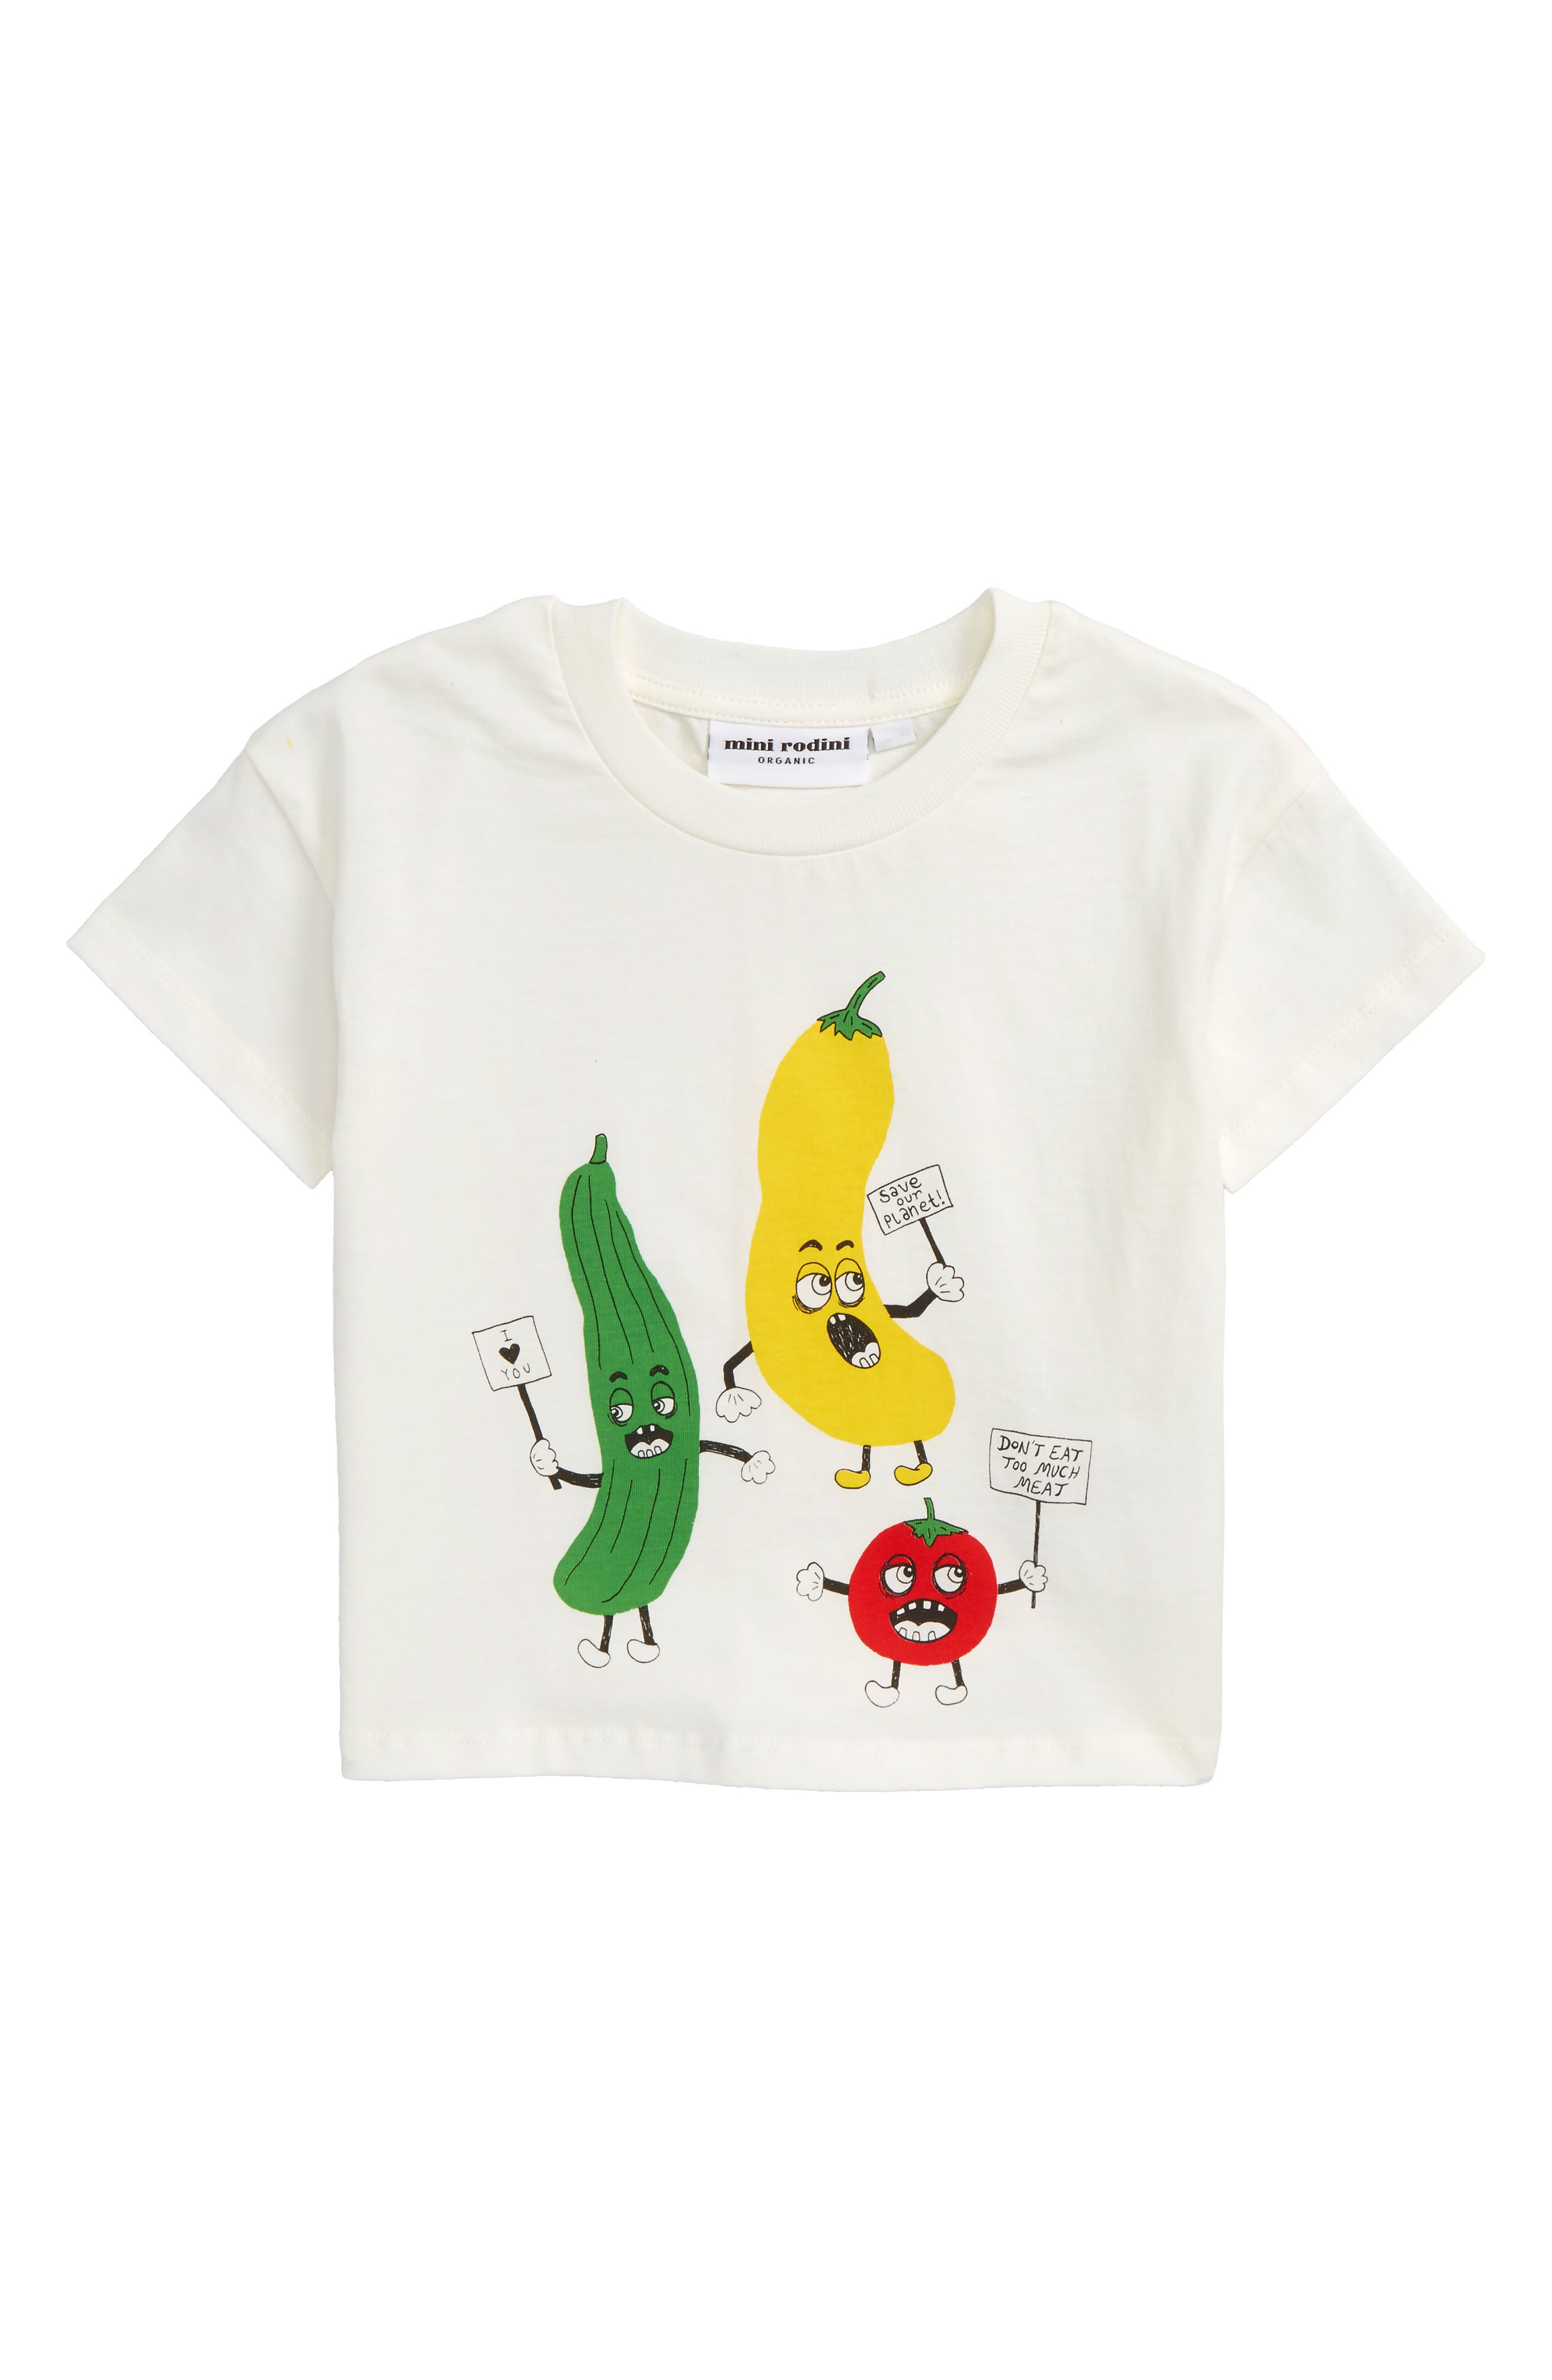 Alternate Image 1 Selected - Mini Rodini Veggie Organic Cotton T-Shirt (Baby)